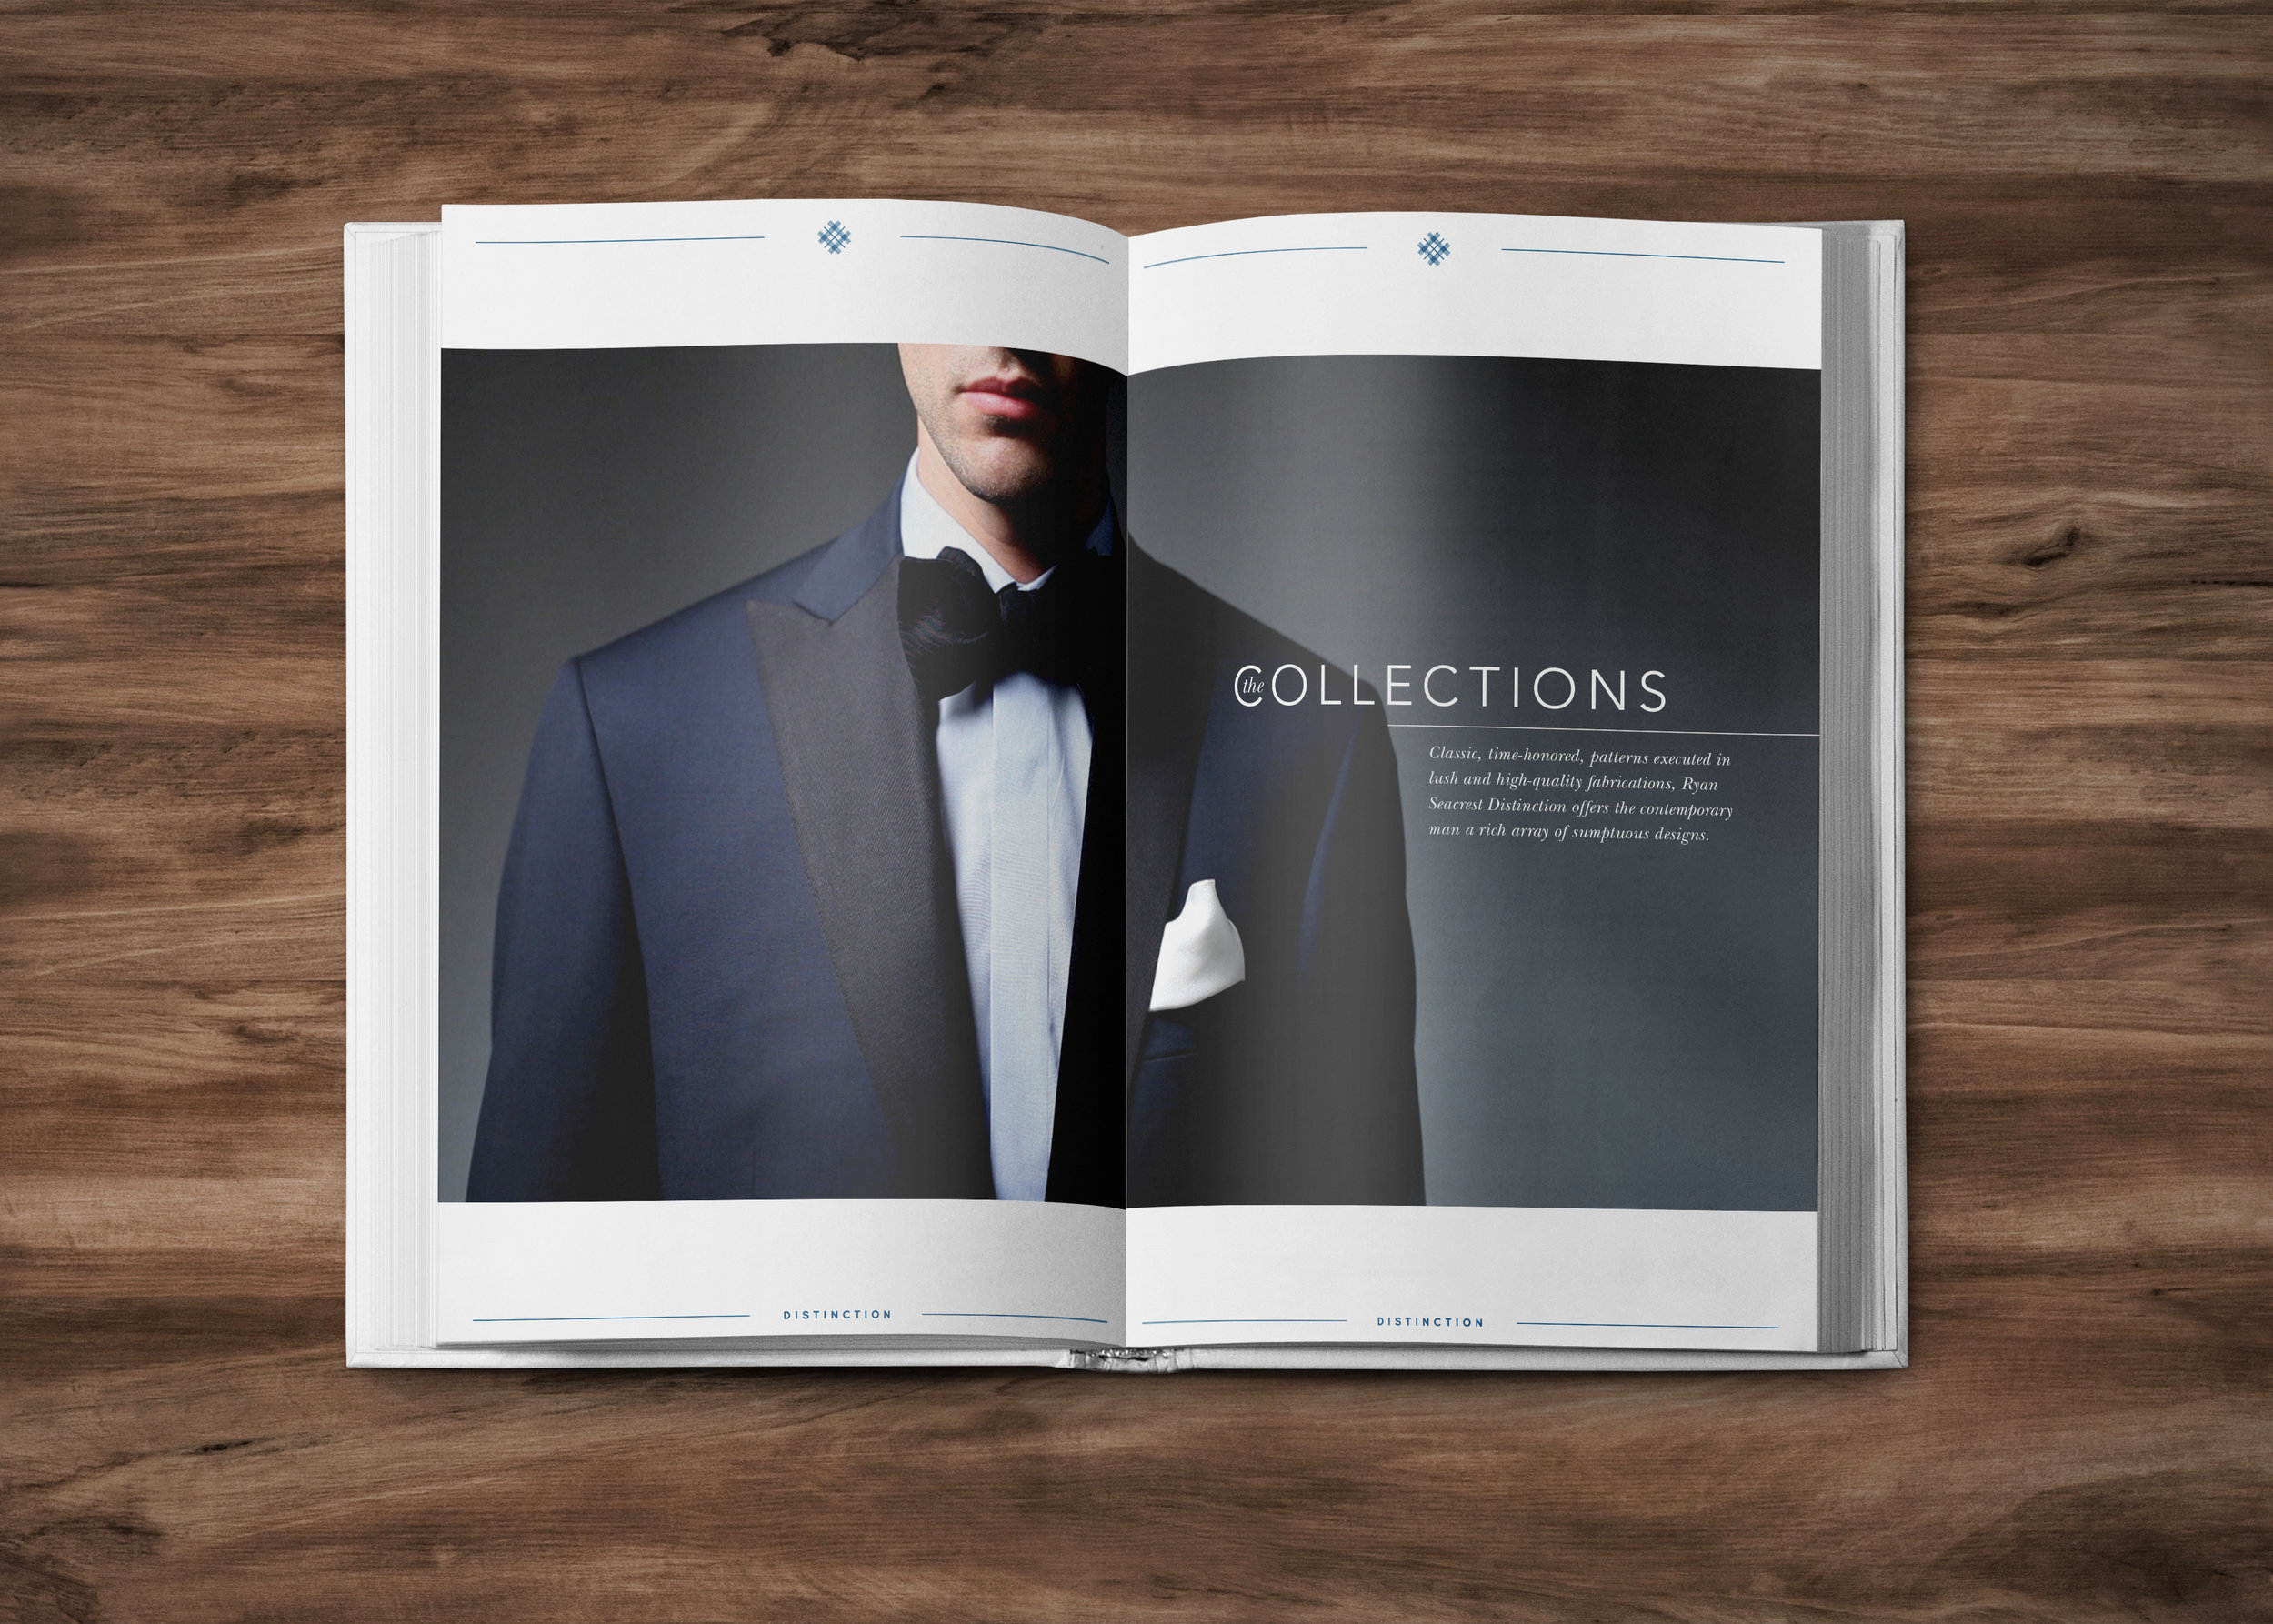 rs-distinction-book-inside-1.jpg